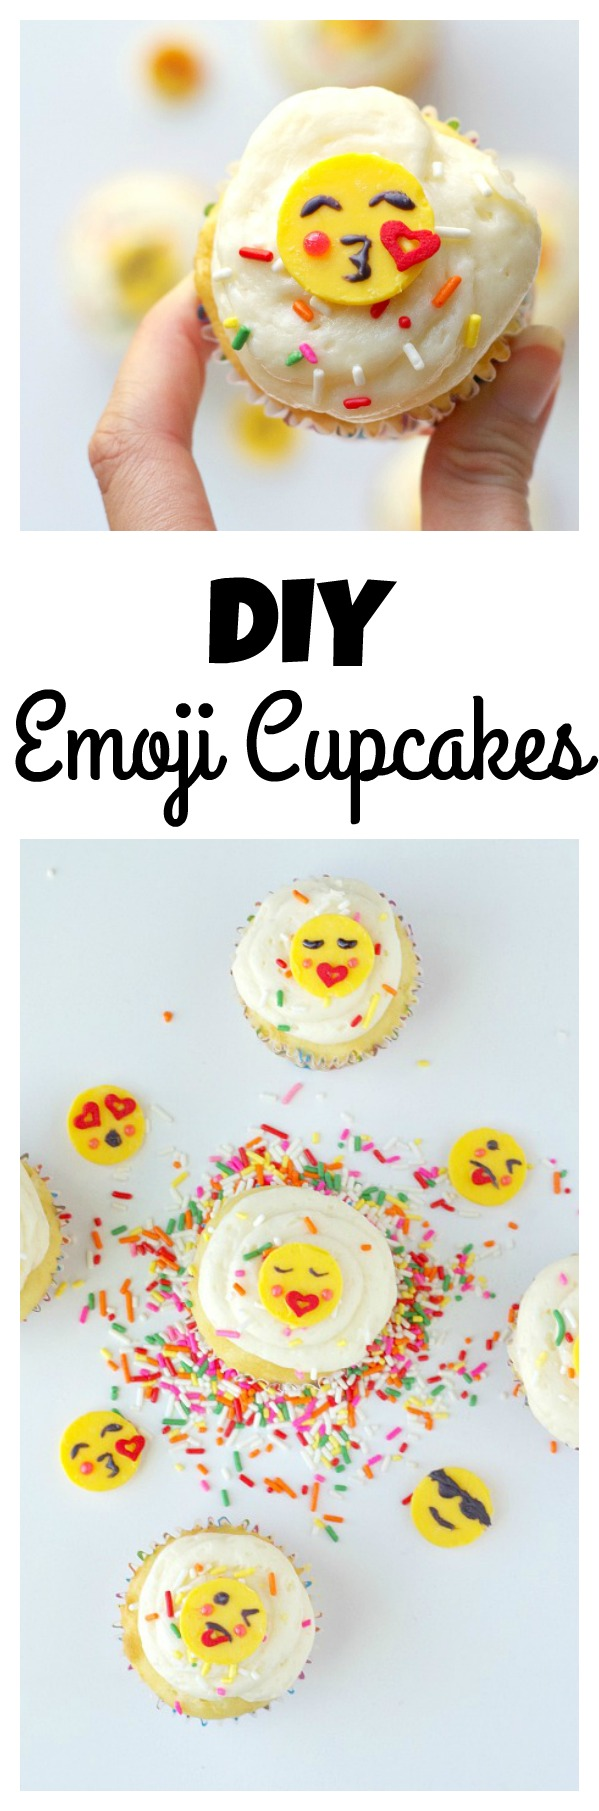 DIY Emoji Cupcakes! Anyone can make these simple emoji cupcakes for parties.